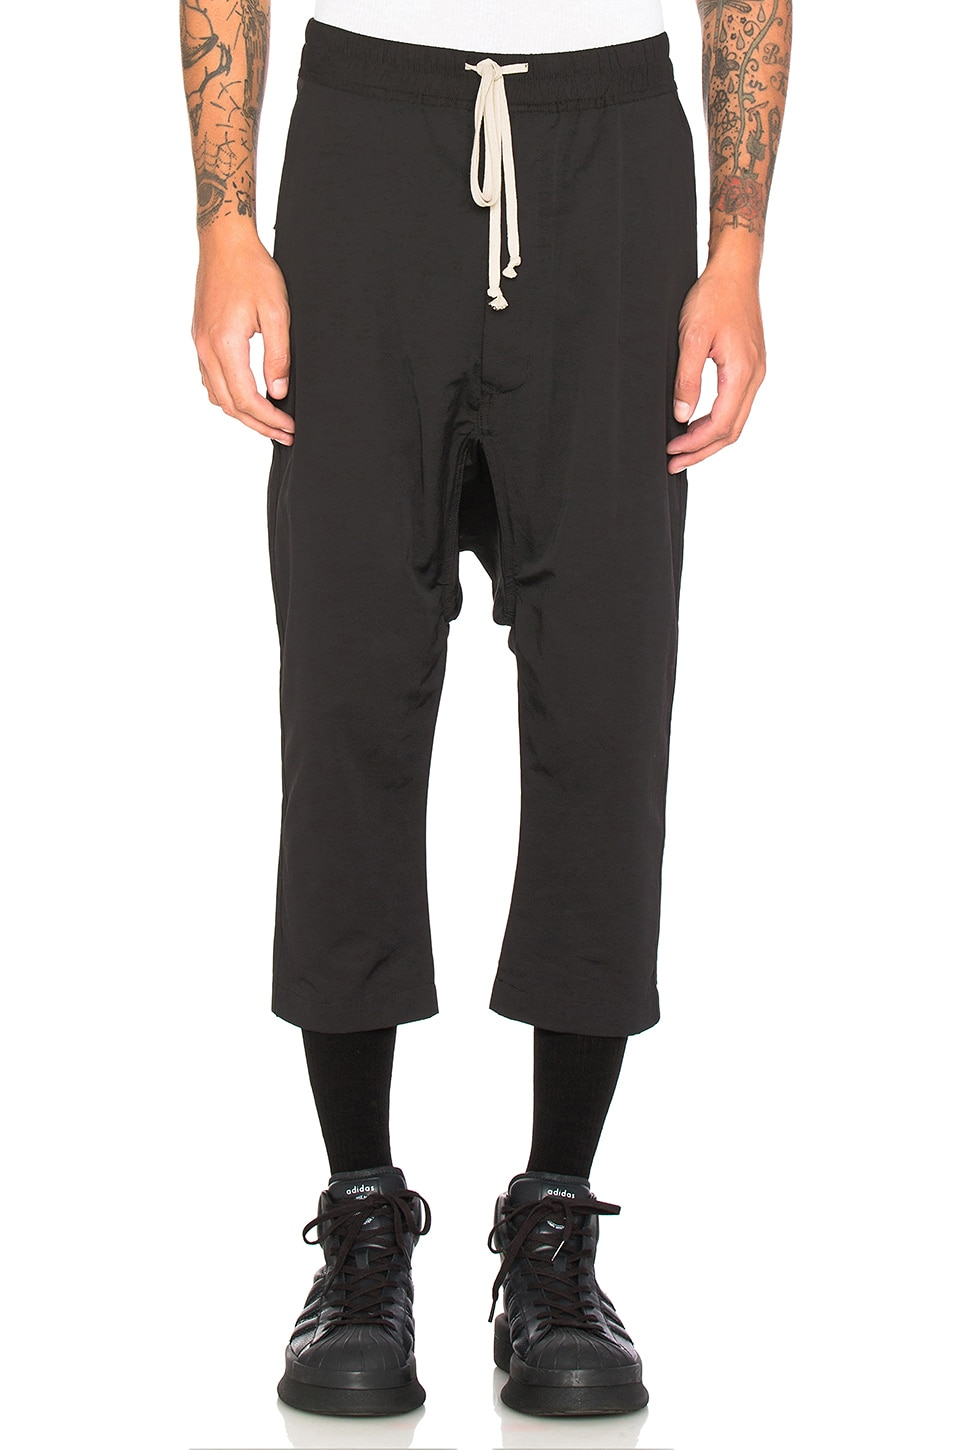 Cropped Sweatpant by DRKSHDW by Rick Owens